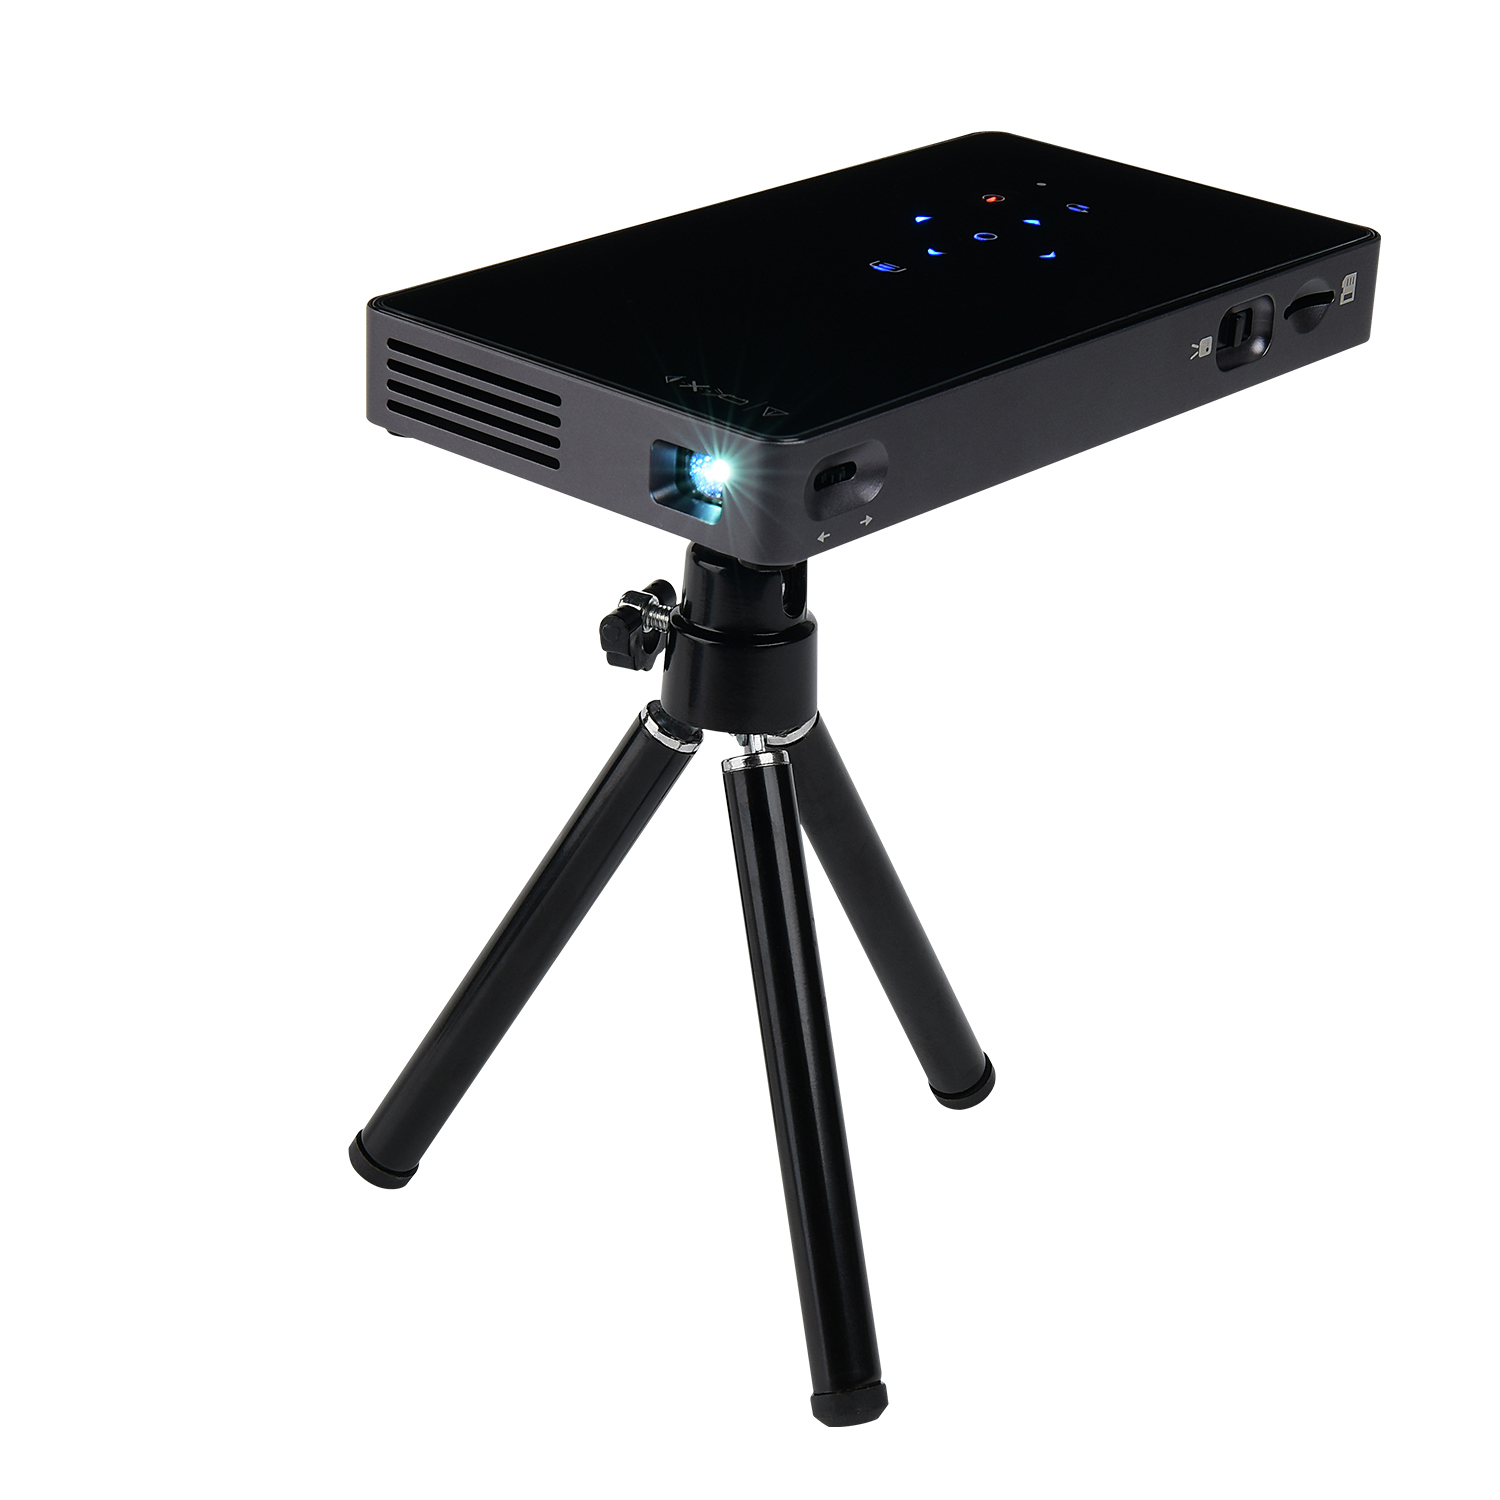 New HD Pico <strong>Projector</strong> P8 HD OUT Android 7.1 Smart Portable mini <strong>Projector</strong> Home Office Wireless WIFI Projection